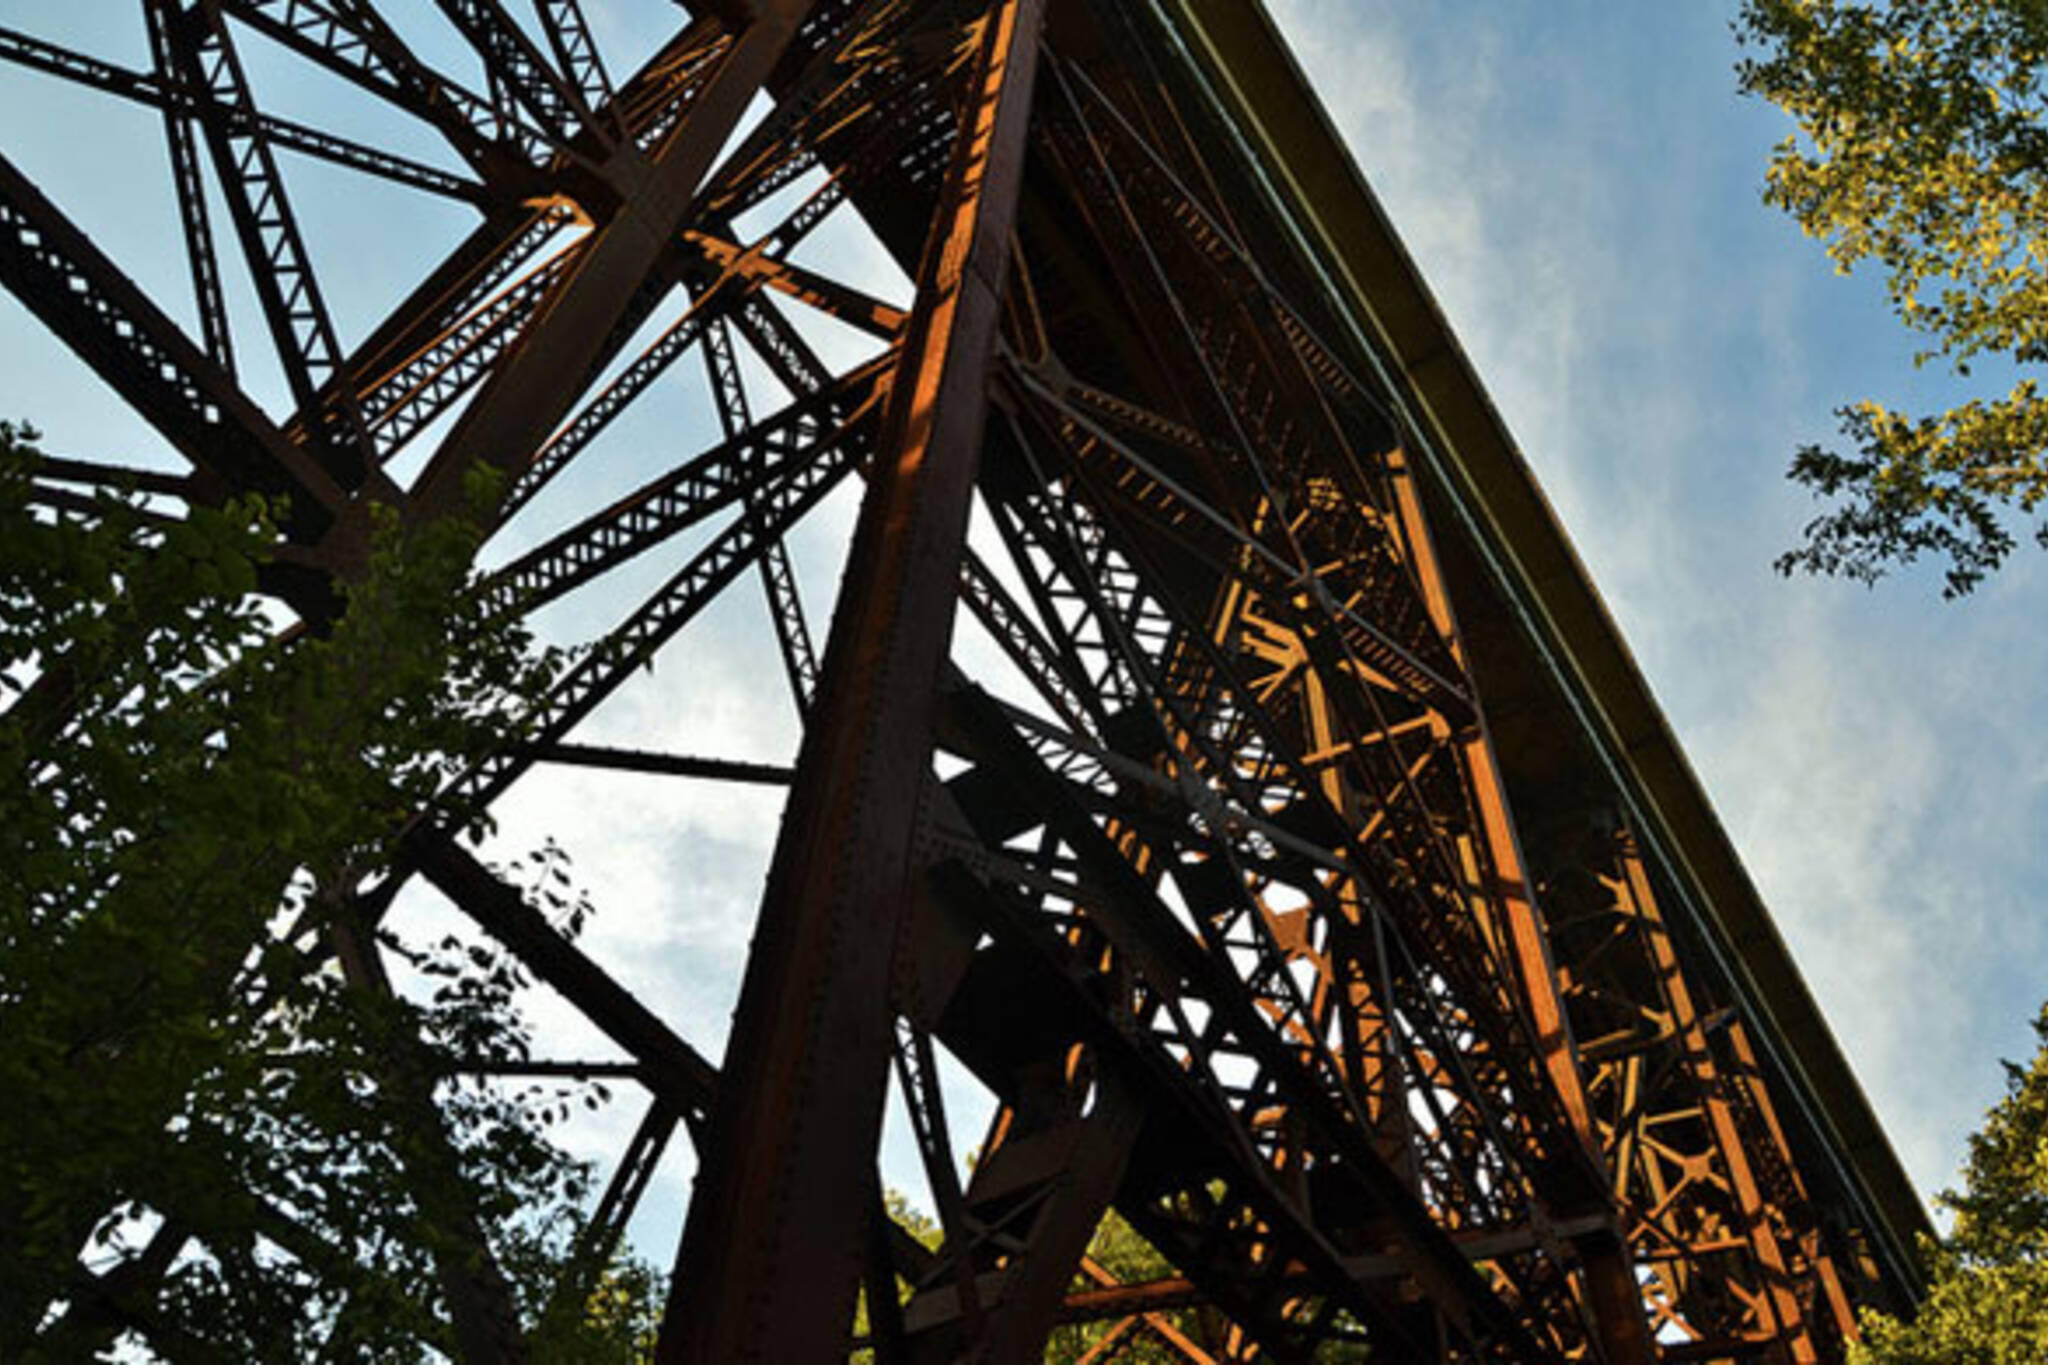 toronto Ernest Thompson Seton Park train bridge